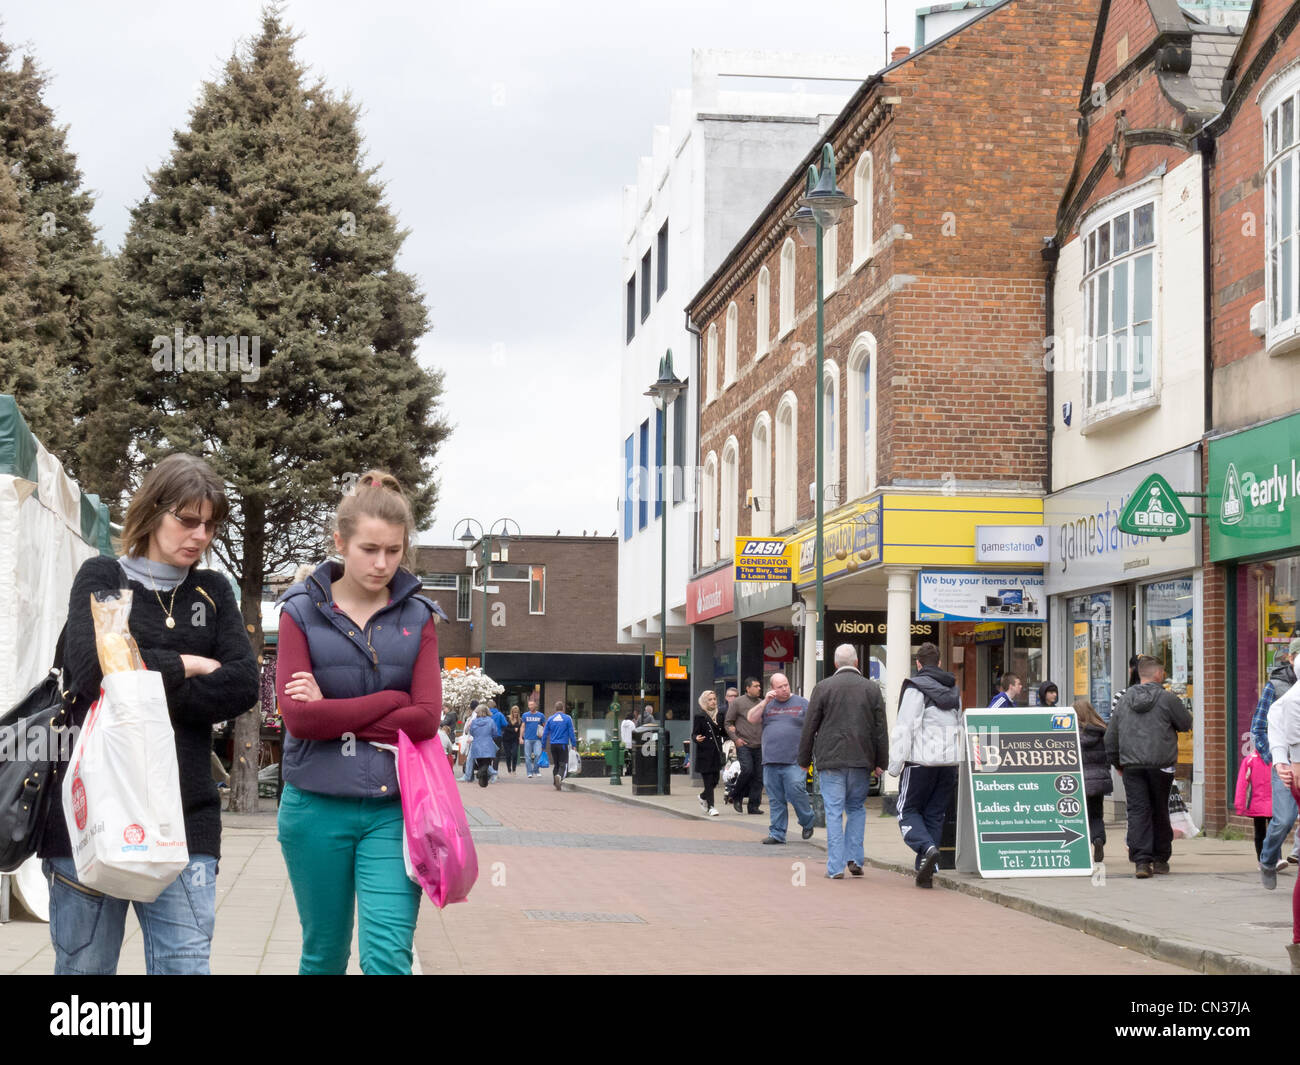 Crewe on a March Saturday pedestrianized shopping zone and female shoppers - Stock Image